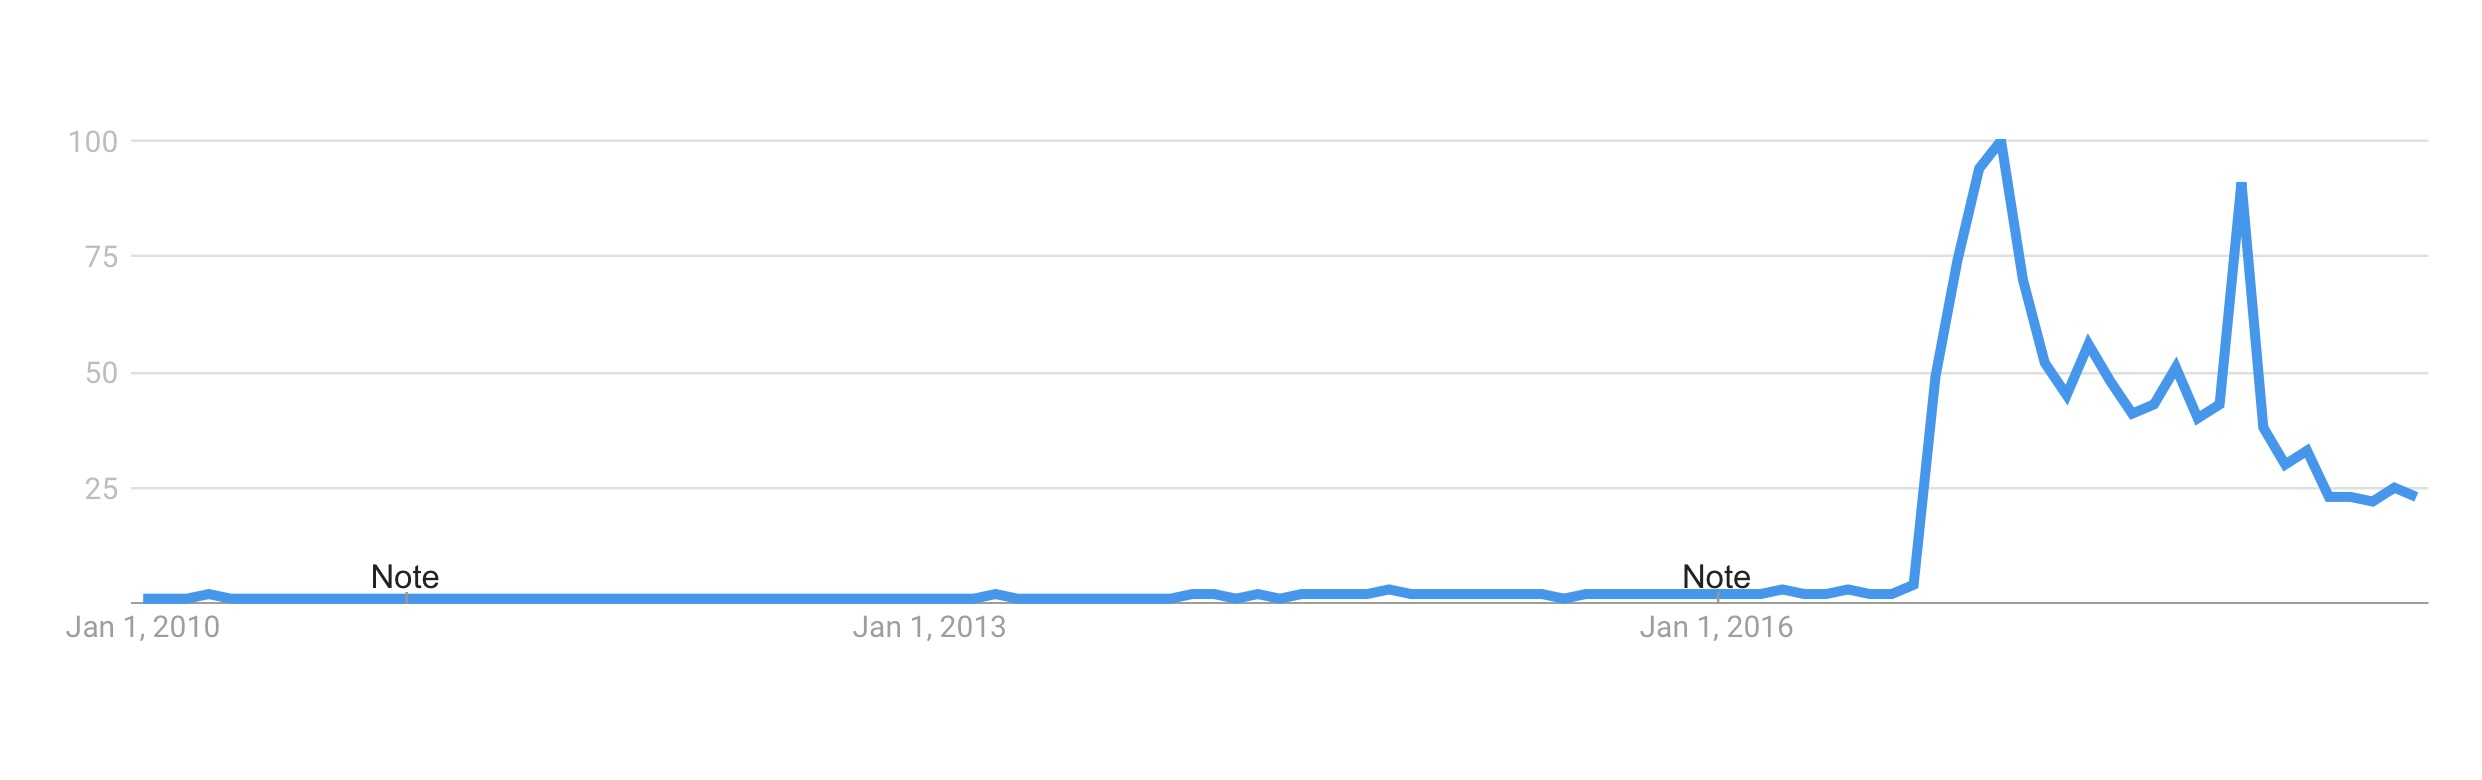 fake news google trends.jpeg